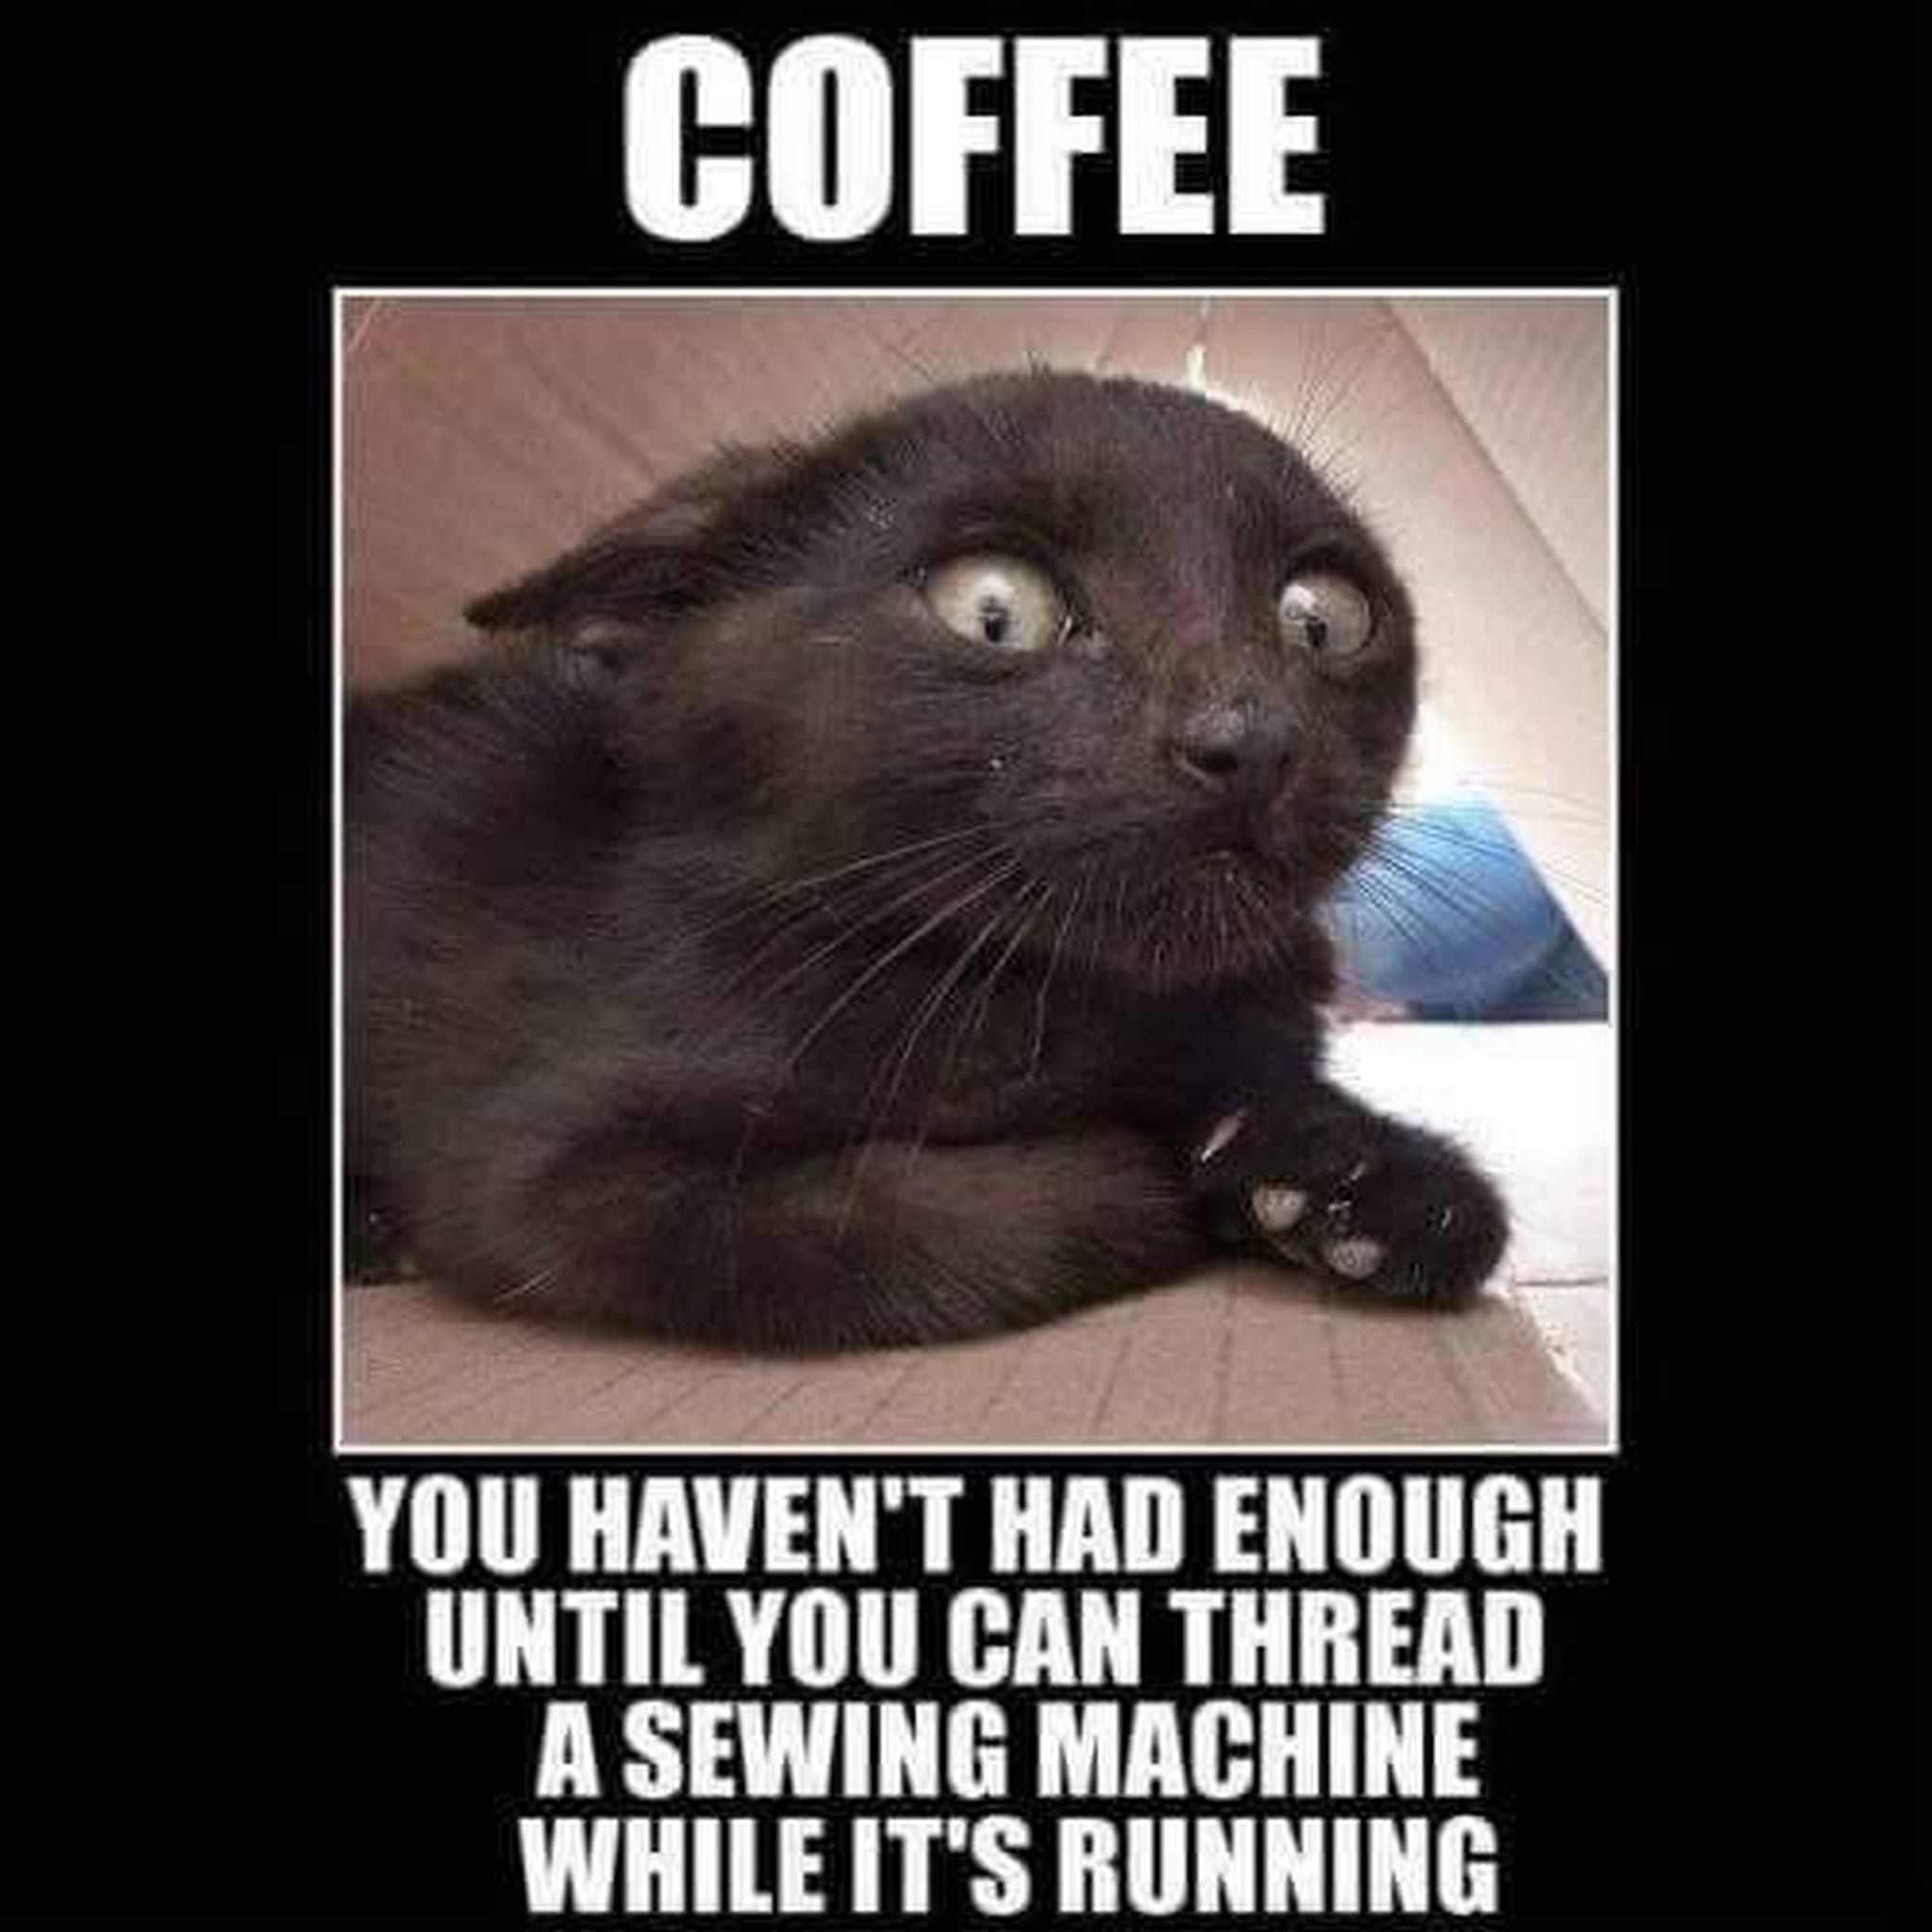 Coffee. You haven't had enough until you can thread a sewing machine while it's running.